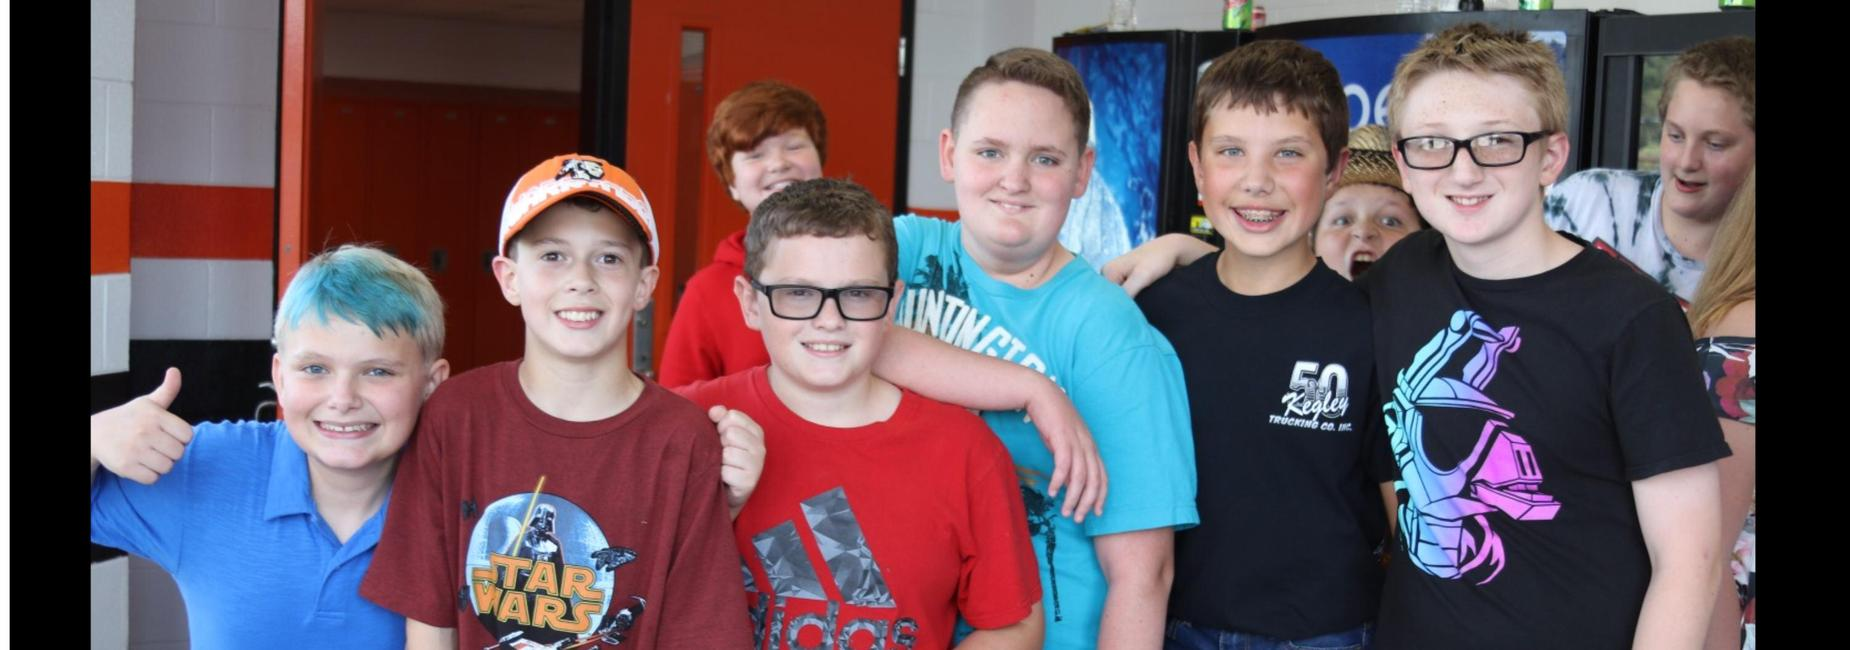 Group of friends at a dance